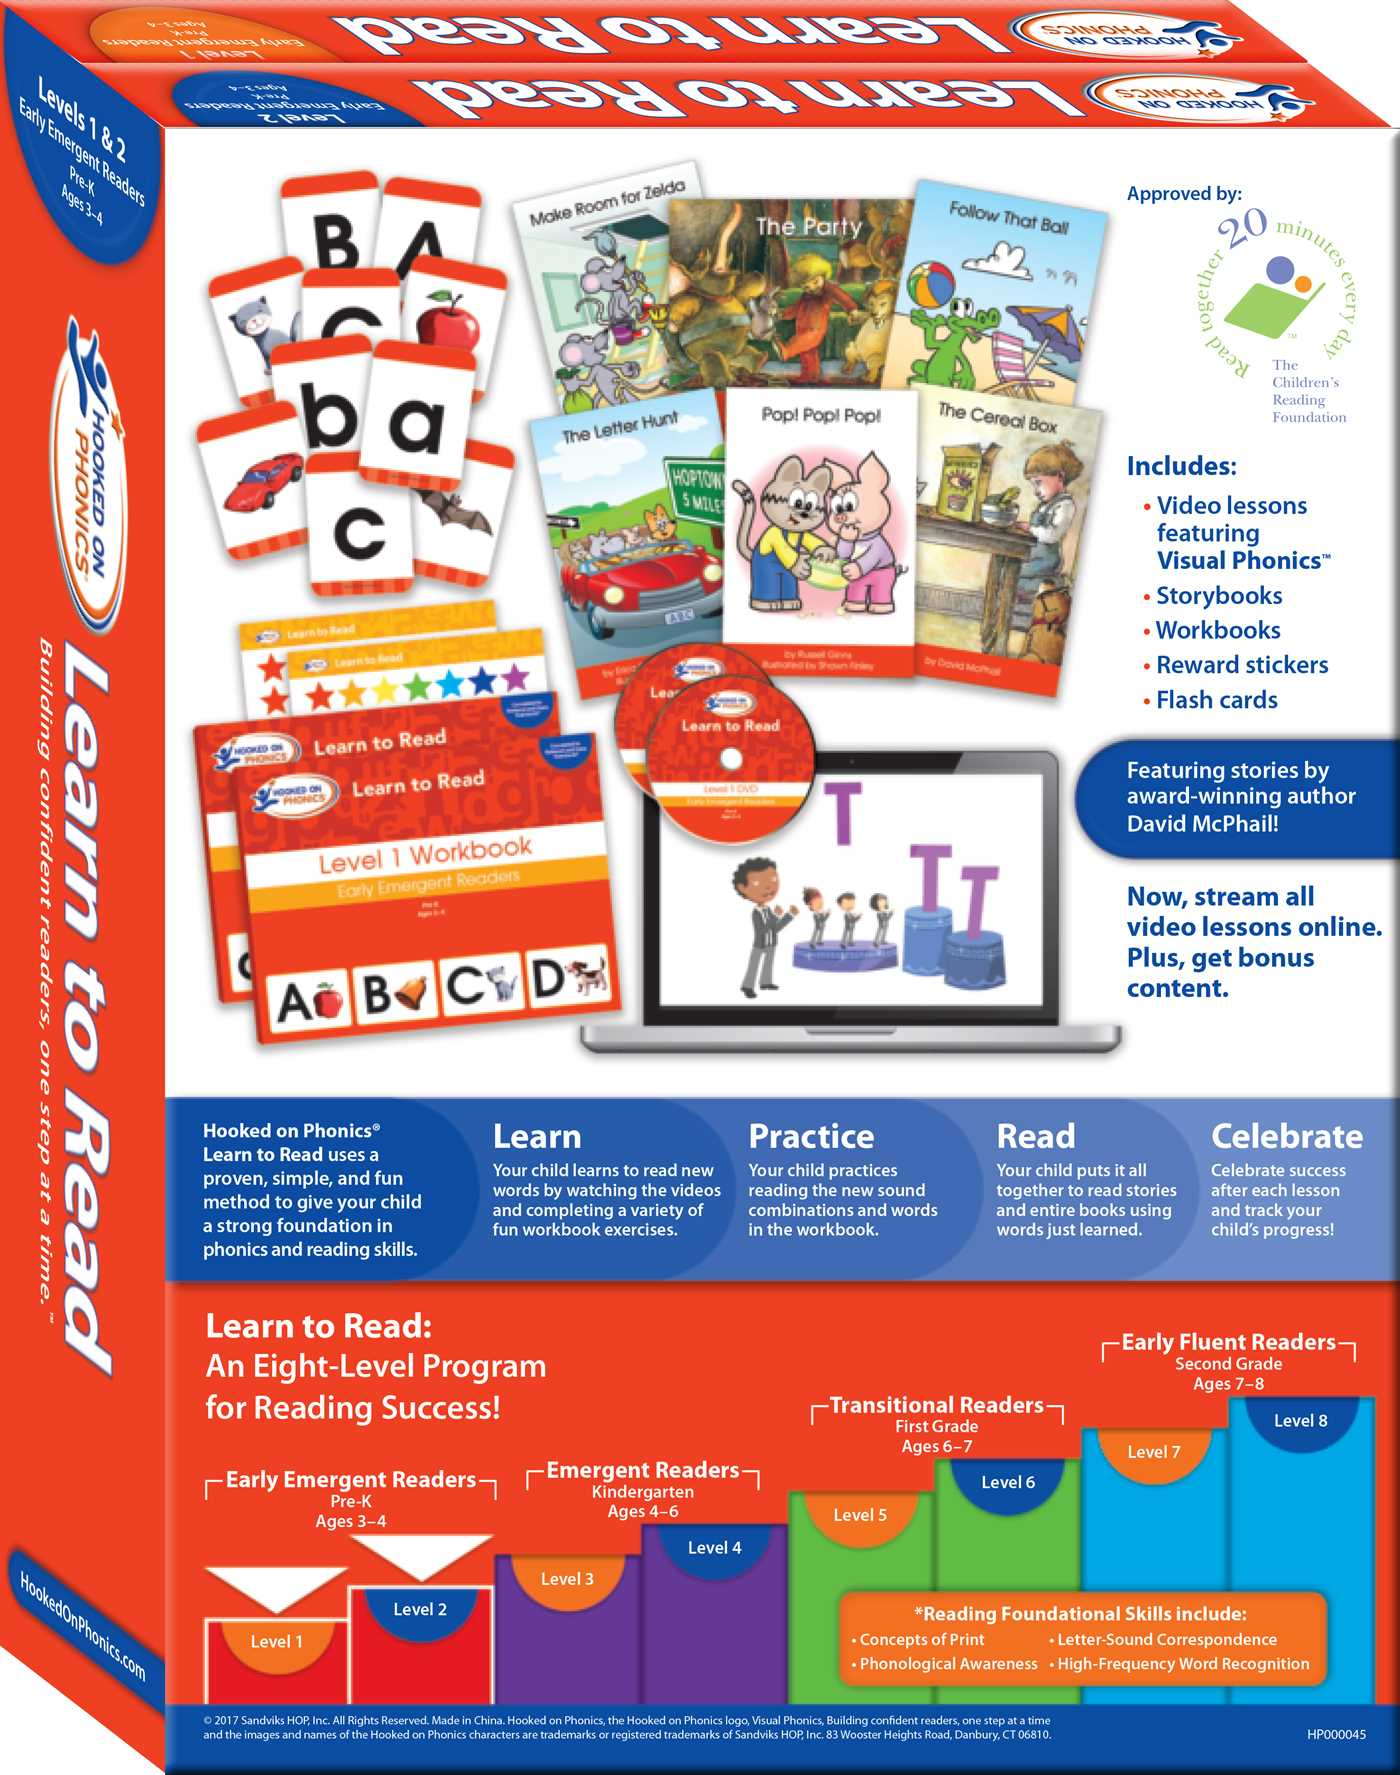 Levels 1/&2 Complete: All About Letters 1 Hooked on Phonics Learn to Read Early Emergent Readers | Pre-K | Ages 3-4